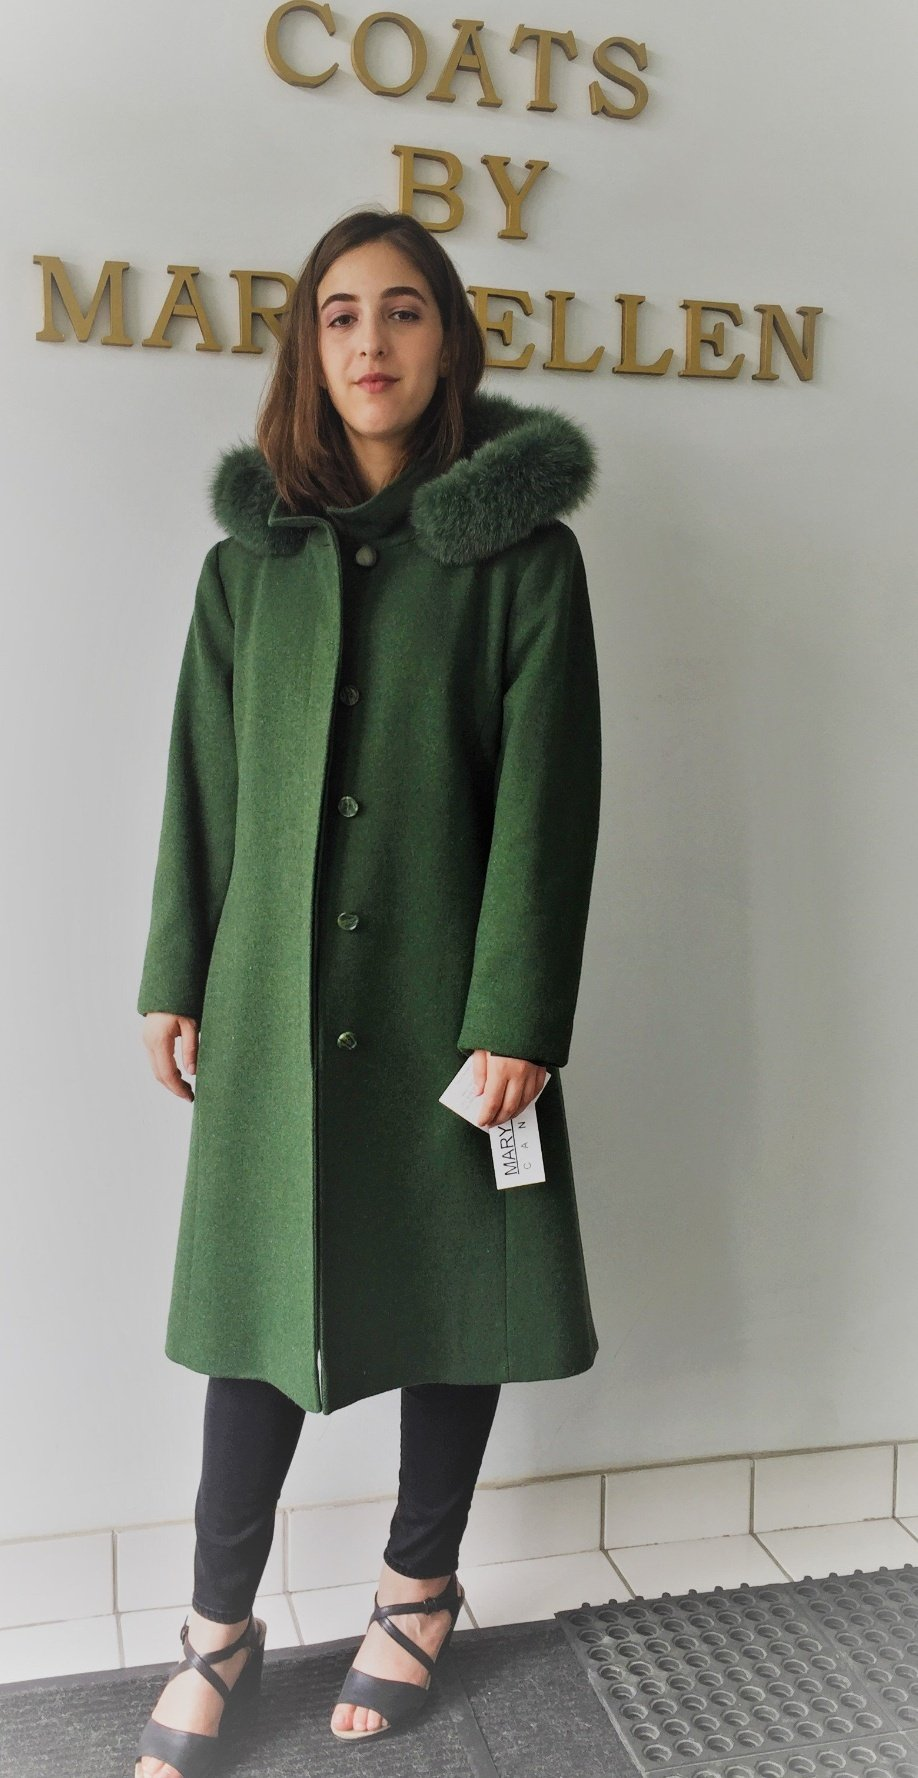 Style#4066-18   Kelly Green  100% Pure Virgin Wool  Features:  Classic styling and optimum comfort.  This coat comes with a genuine fox trimmed detachable hood. Coat has a stand  collar, ideal for keeping the chill out on cold windy days. Full chamois lining.  Includes extra buttons.  In-Stock Colours:  Kelly Green, Plum, Sangria, Black,  Navy  or can be made in the colour of your choice.  Various Fabrics: Cashmere and Cashmere/Wool Blends,  Alpaca blends, 100% Pure Virgin Wool and  other fine fabrics   Sizes: S, M, L  Price:  $599 and up